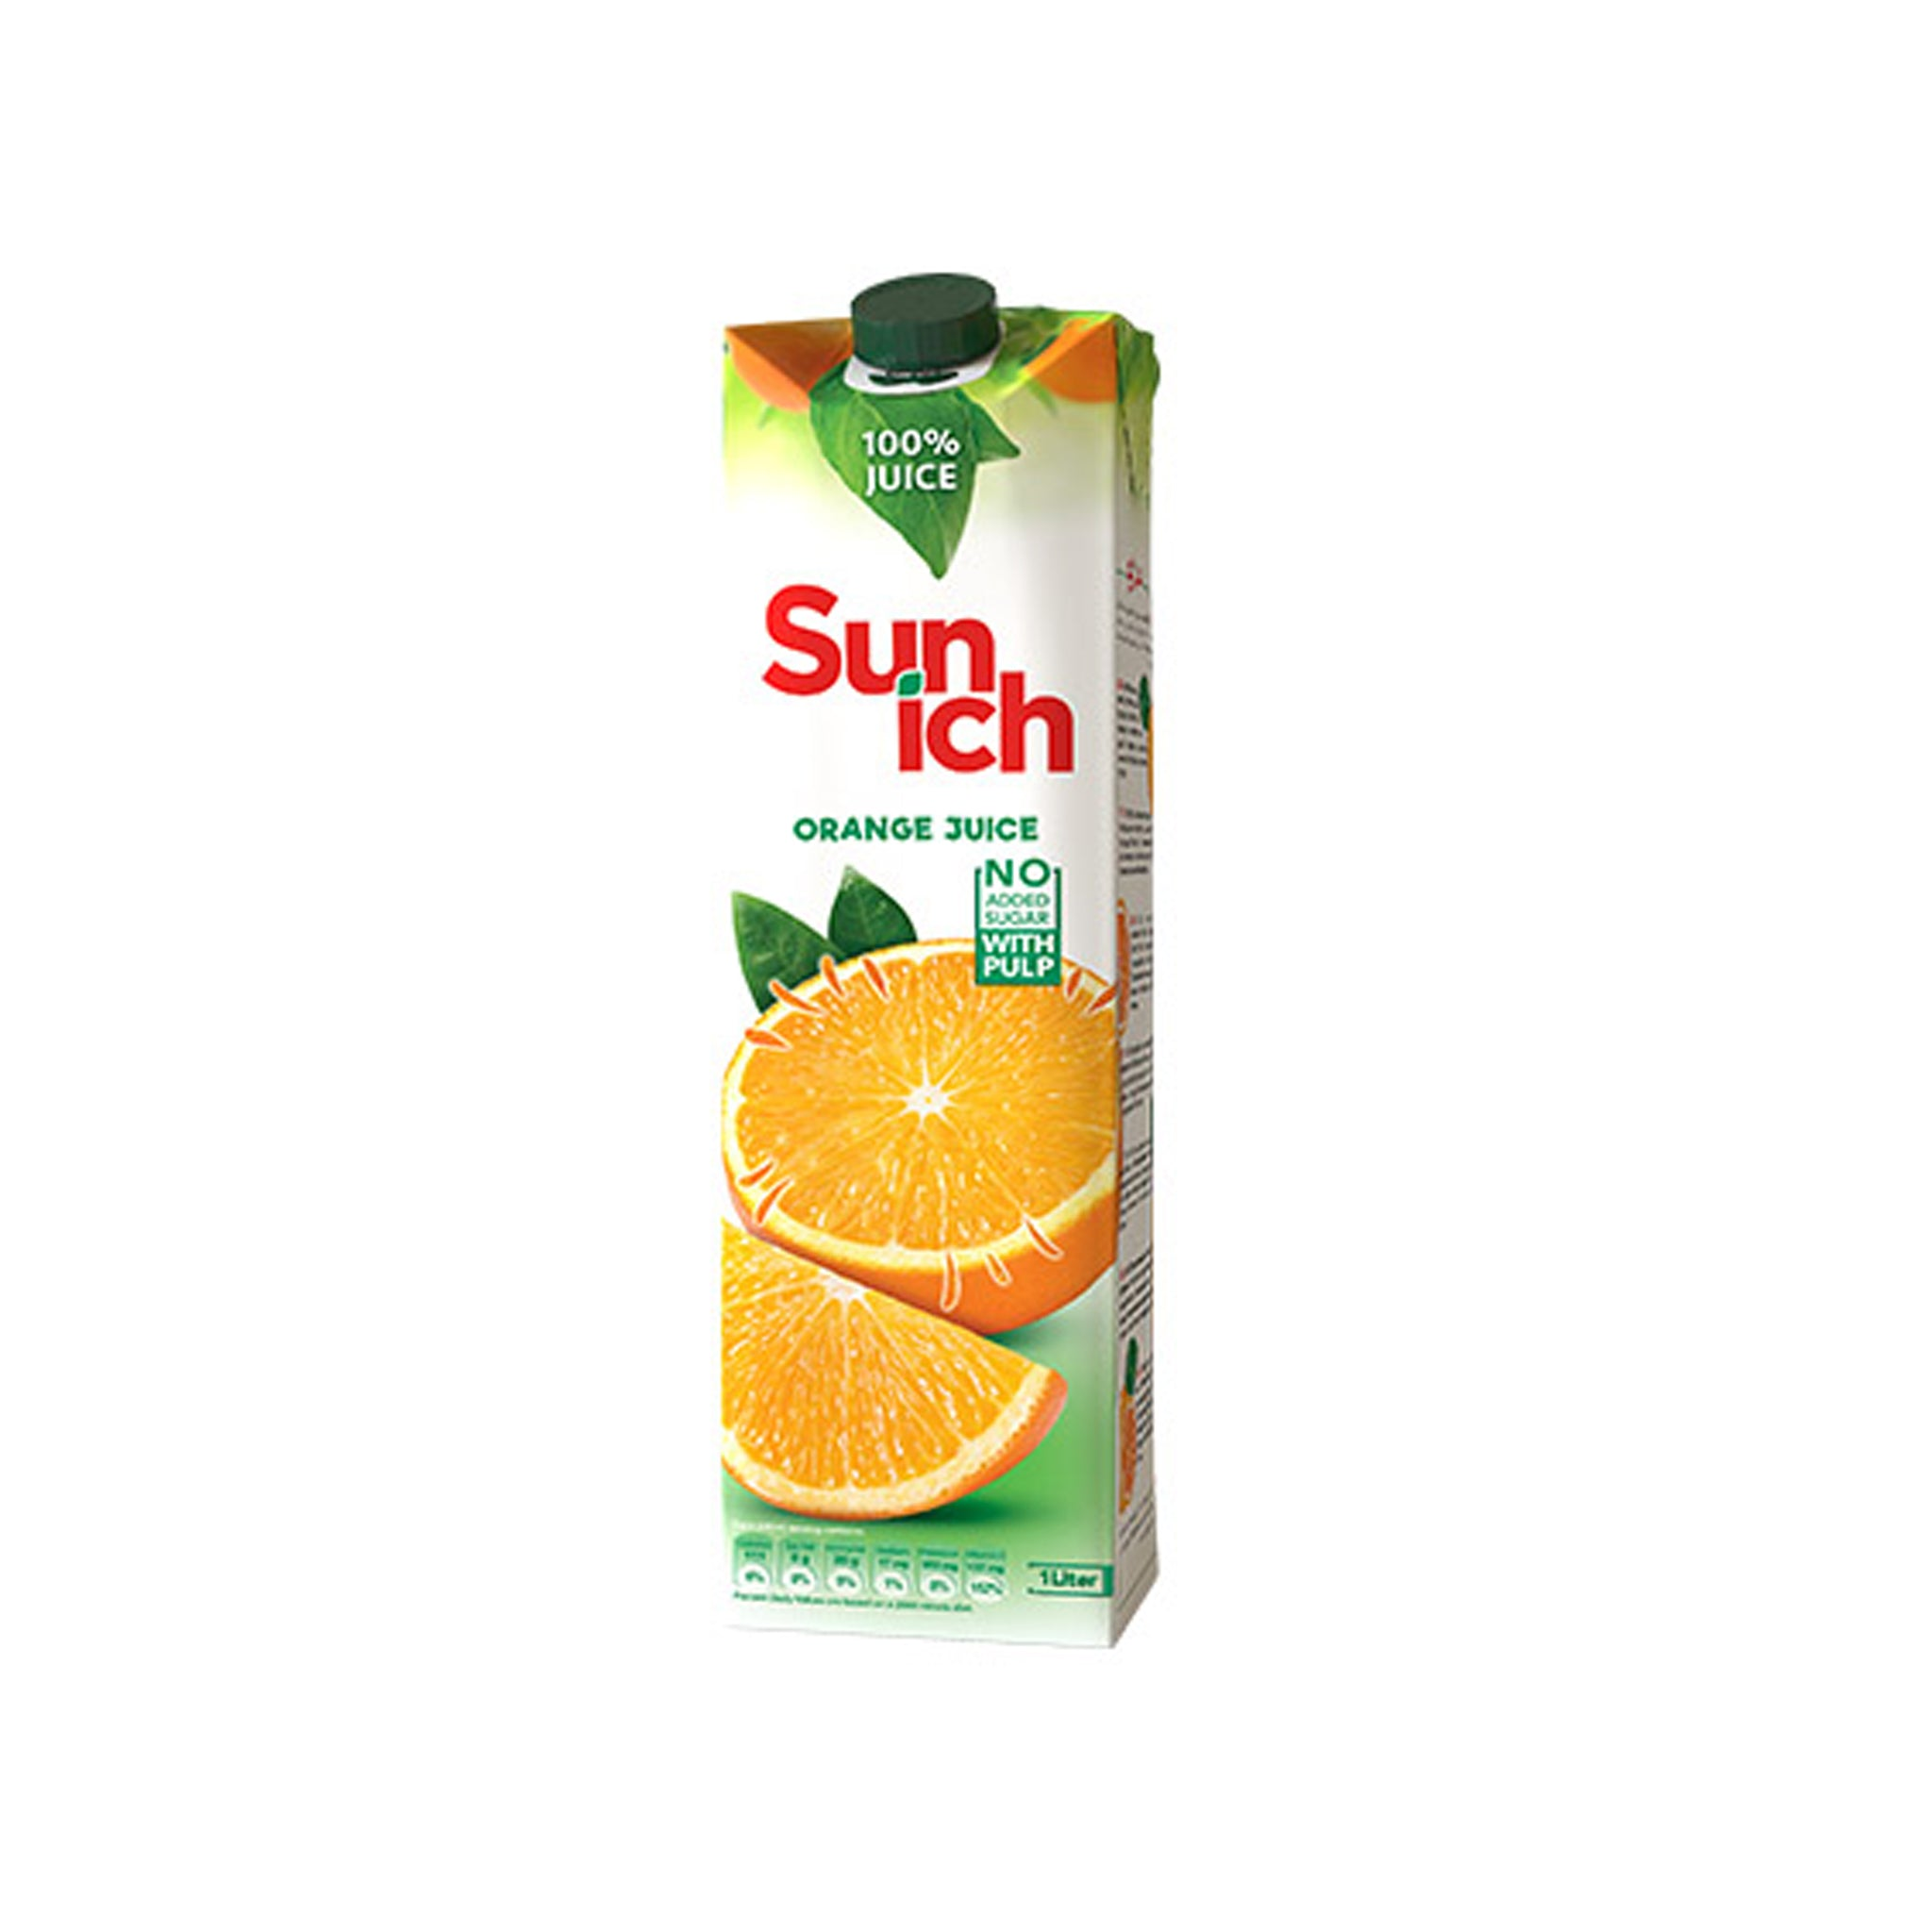 Sunich Orange Juice 1L